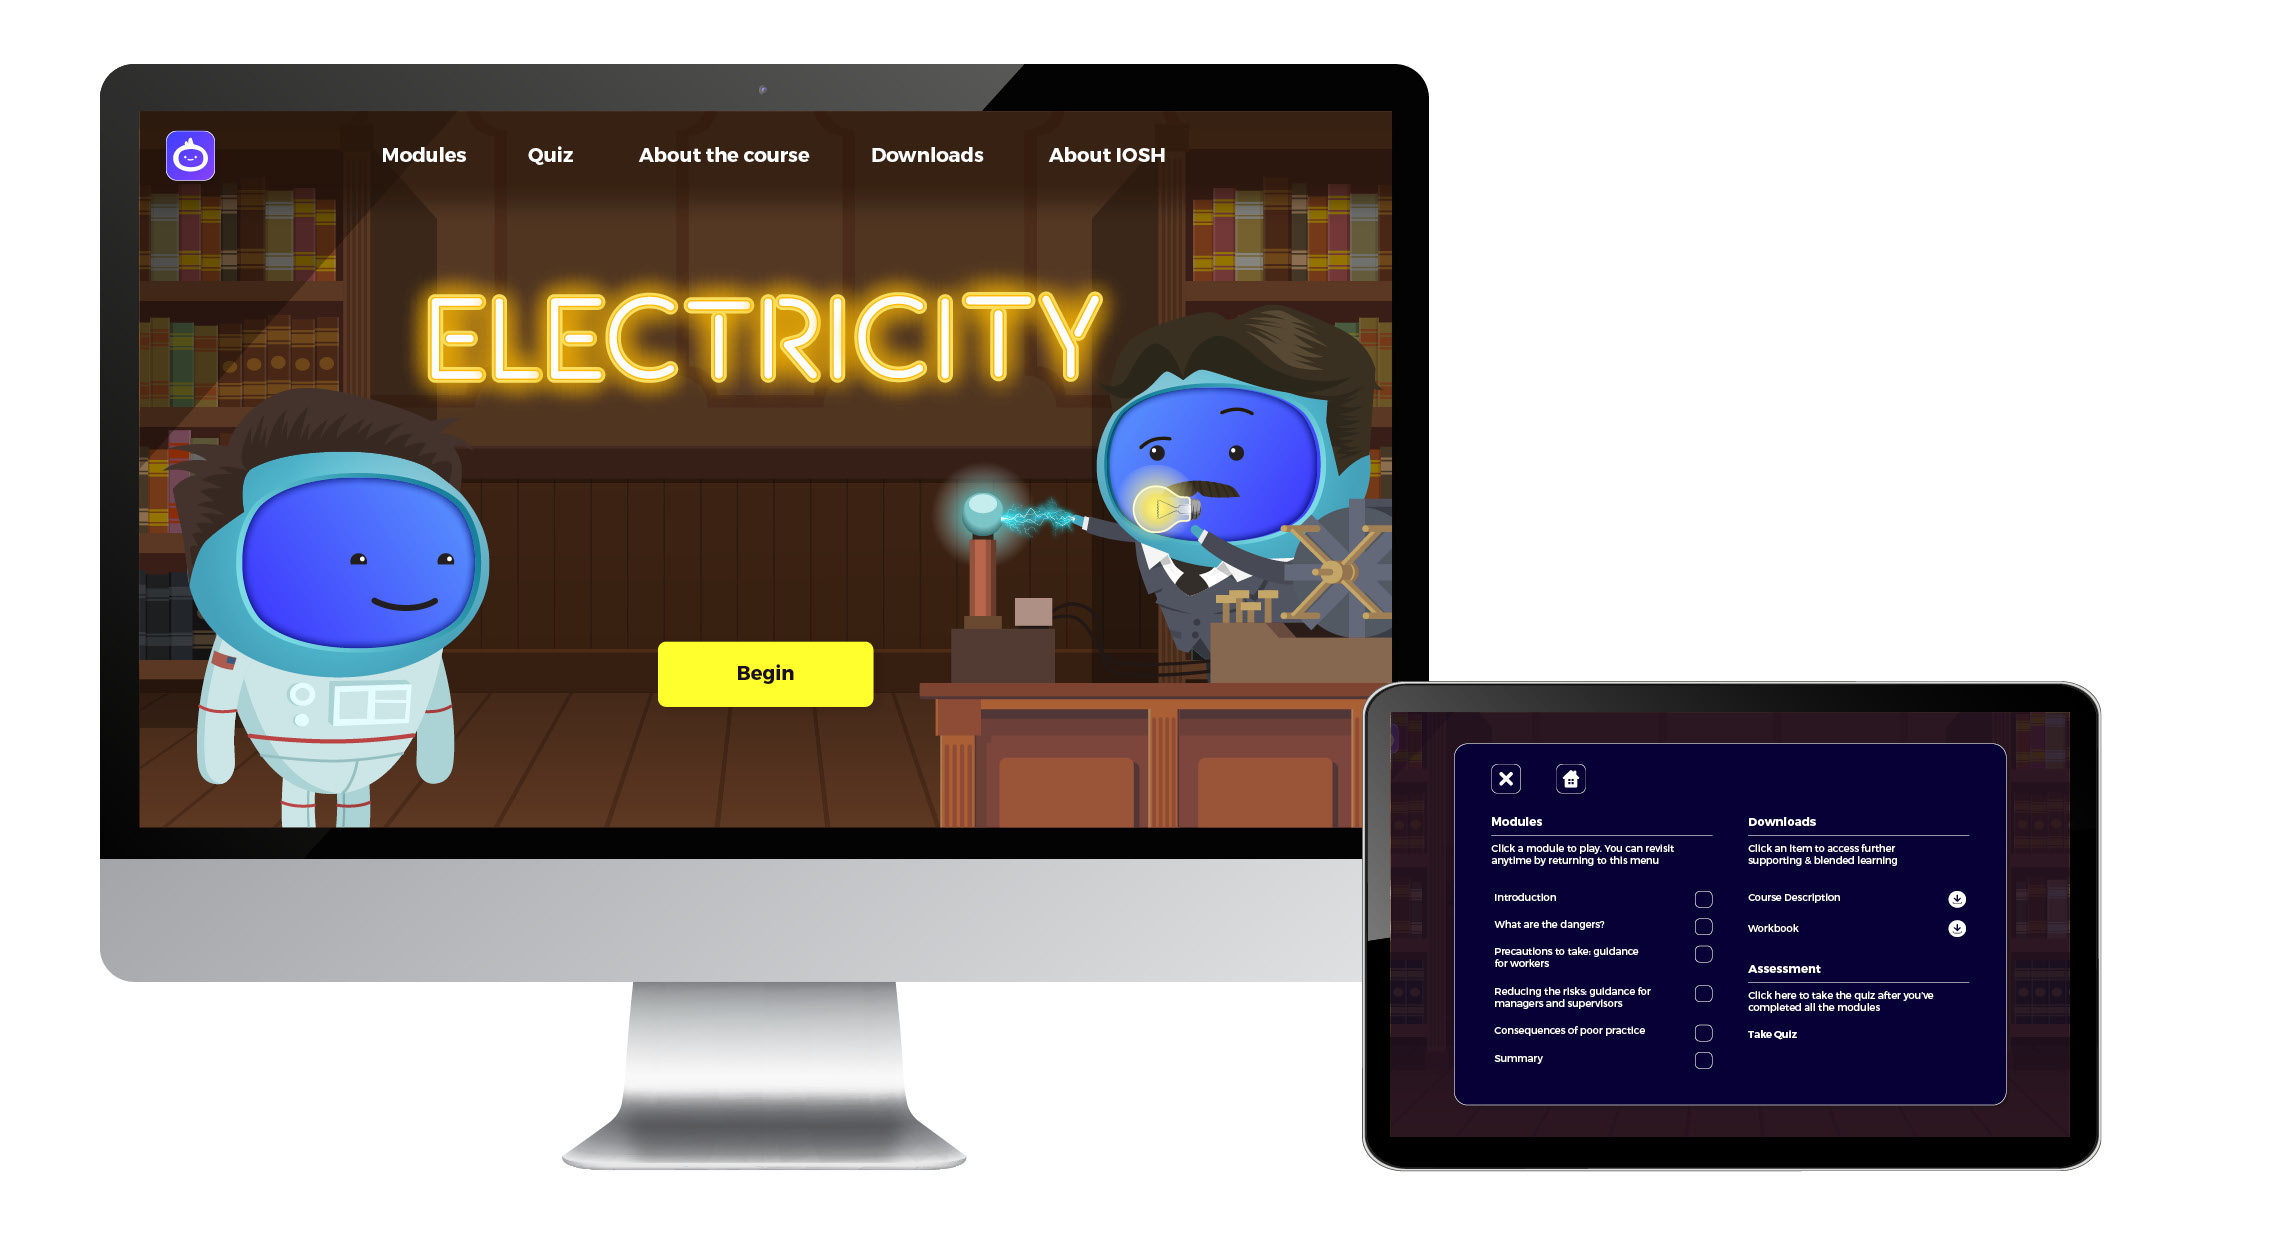 Electricity - Landing Page7